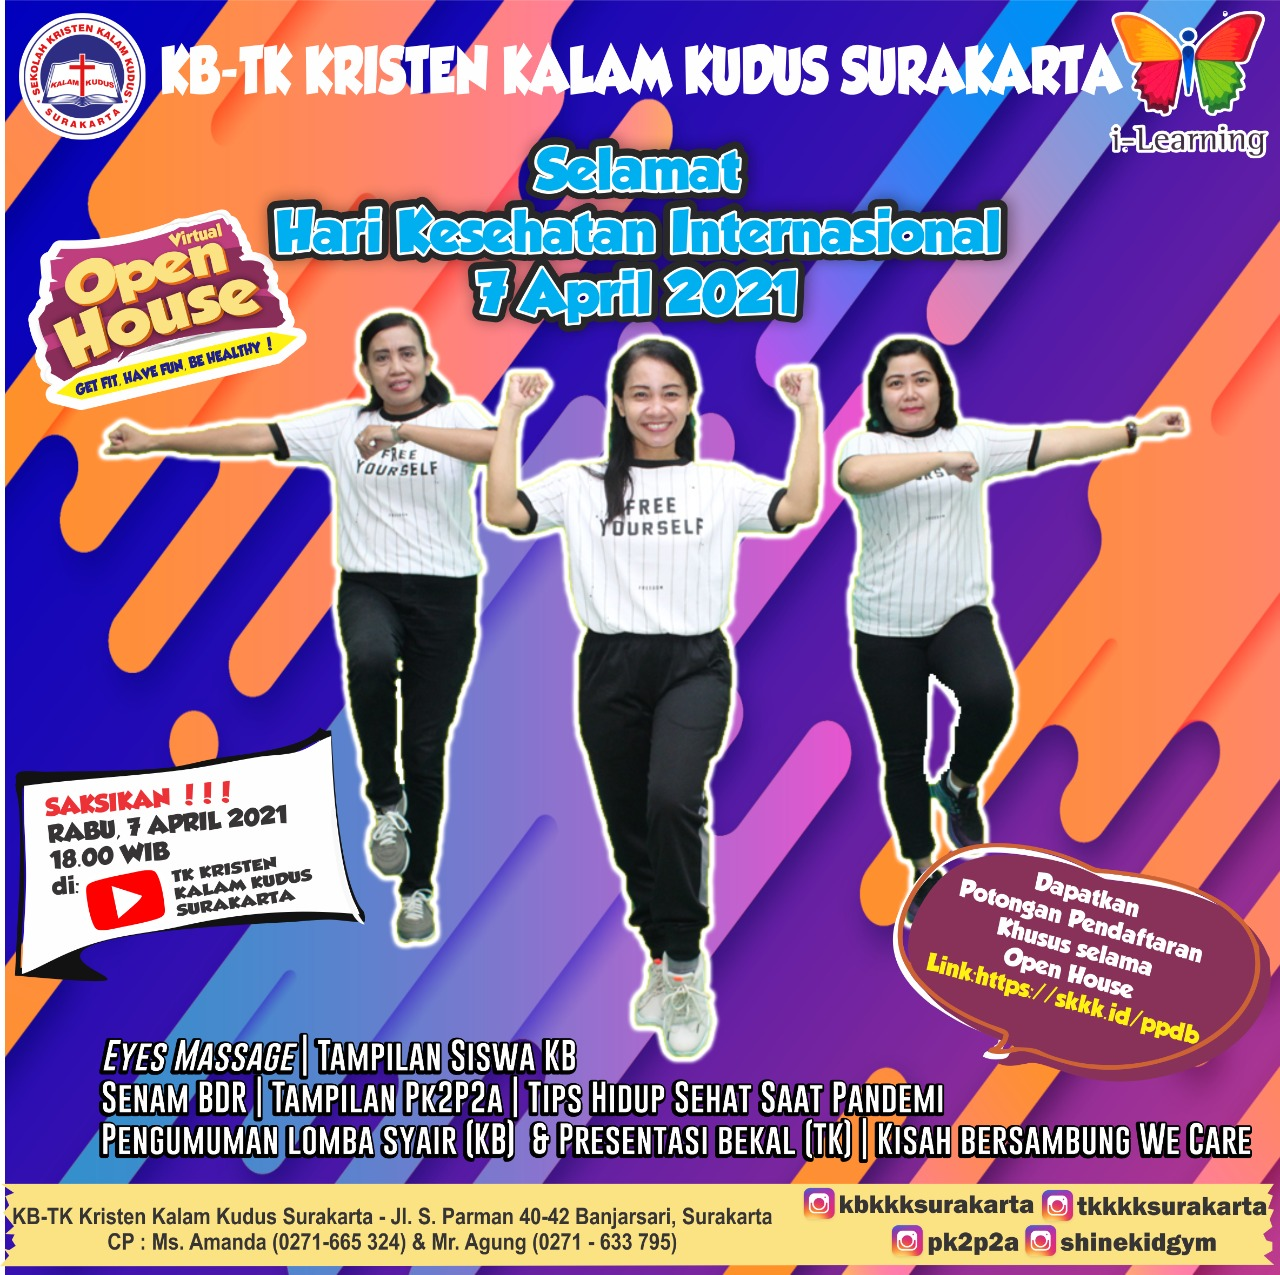 Virtual Open House KB-TK Kristen Kalam Kudus Surakarta - 7 April 2021